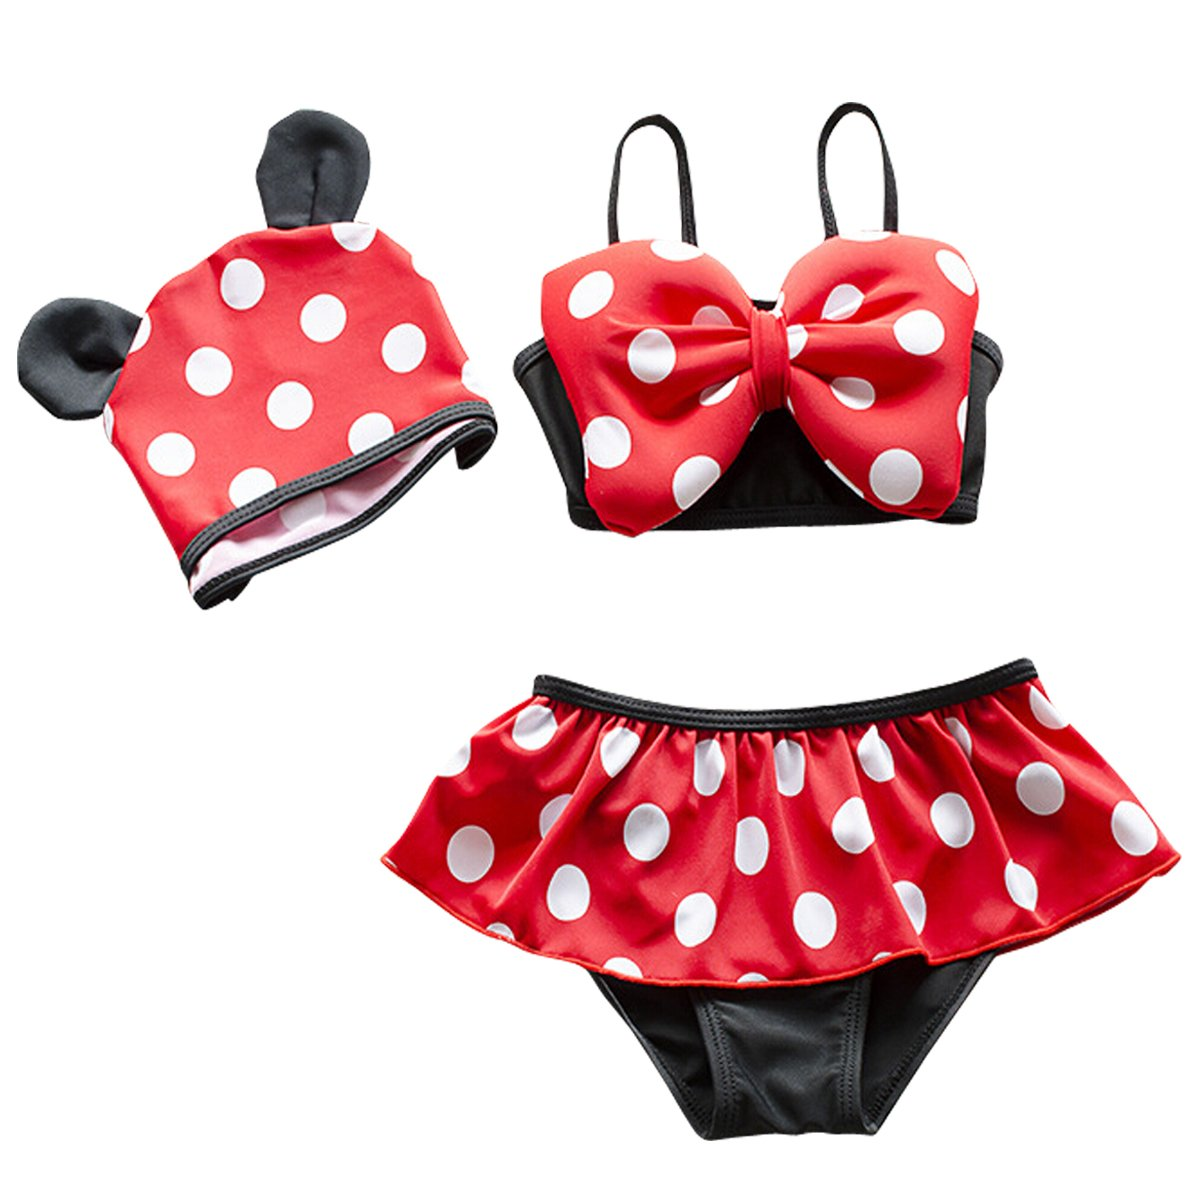 018f54597dcce Amazon.com: Jastore 3pcs Baby Girls Swimwear Cute Polka Dots Bikini Set  Swimsuit: Clothing